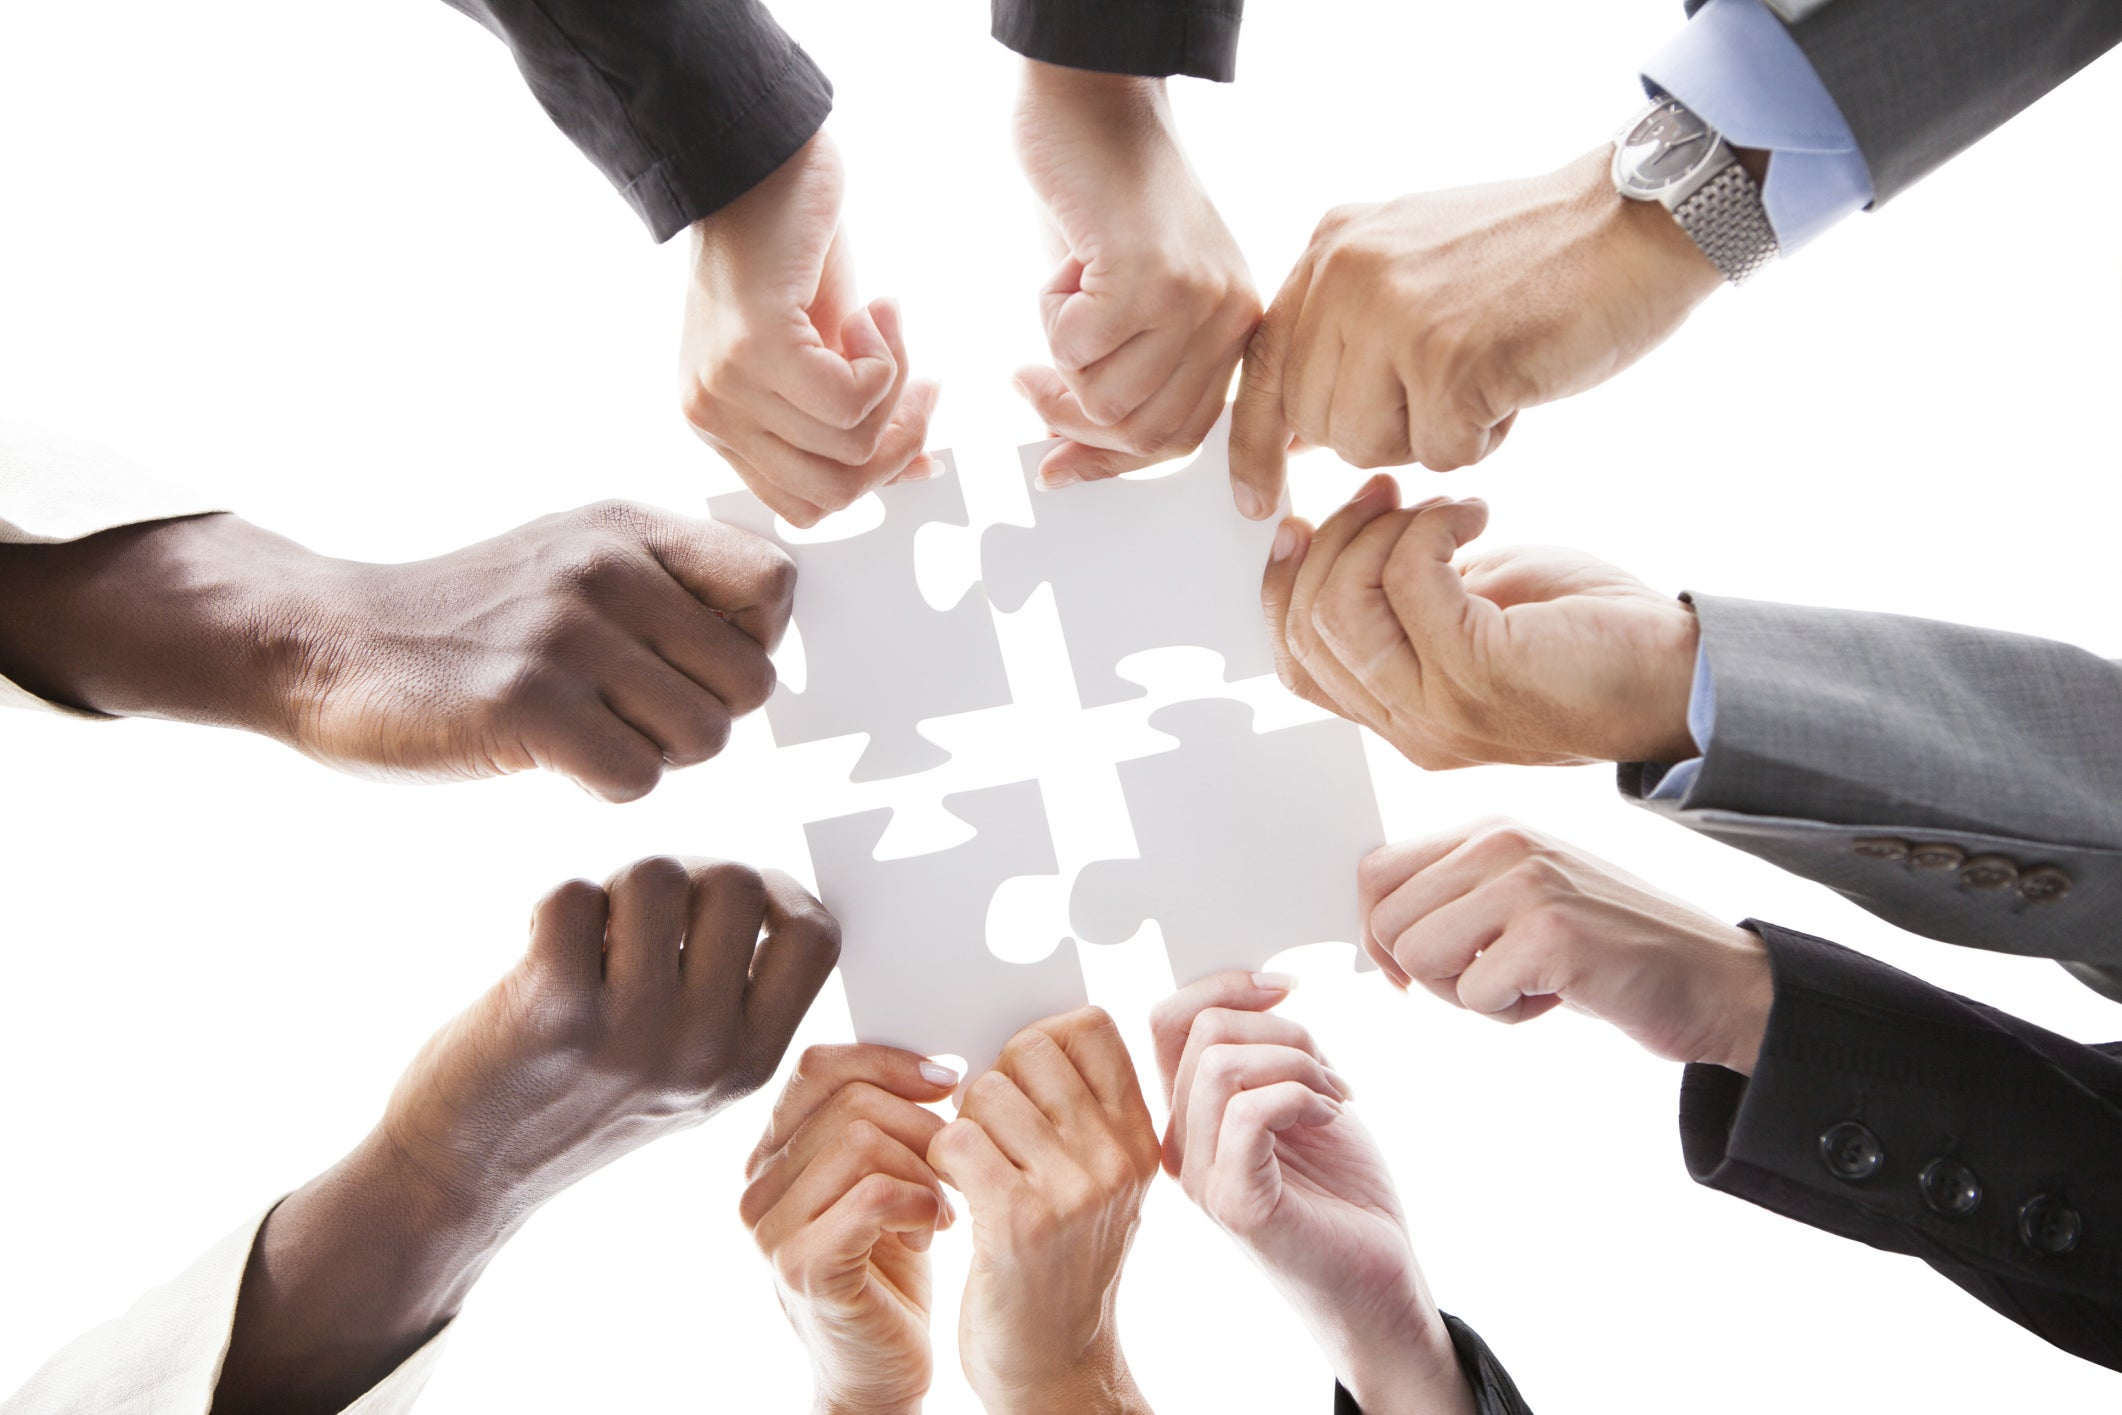 teamwork puzzle organized pieces together